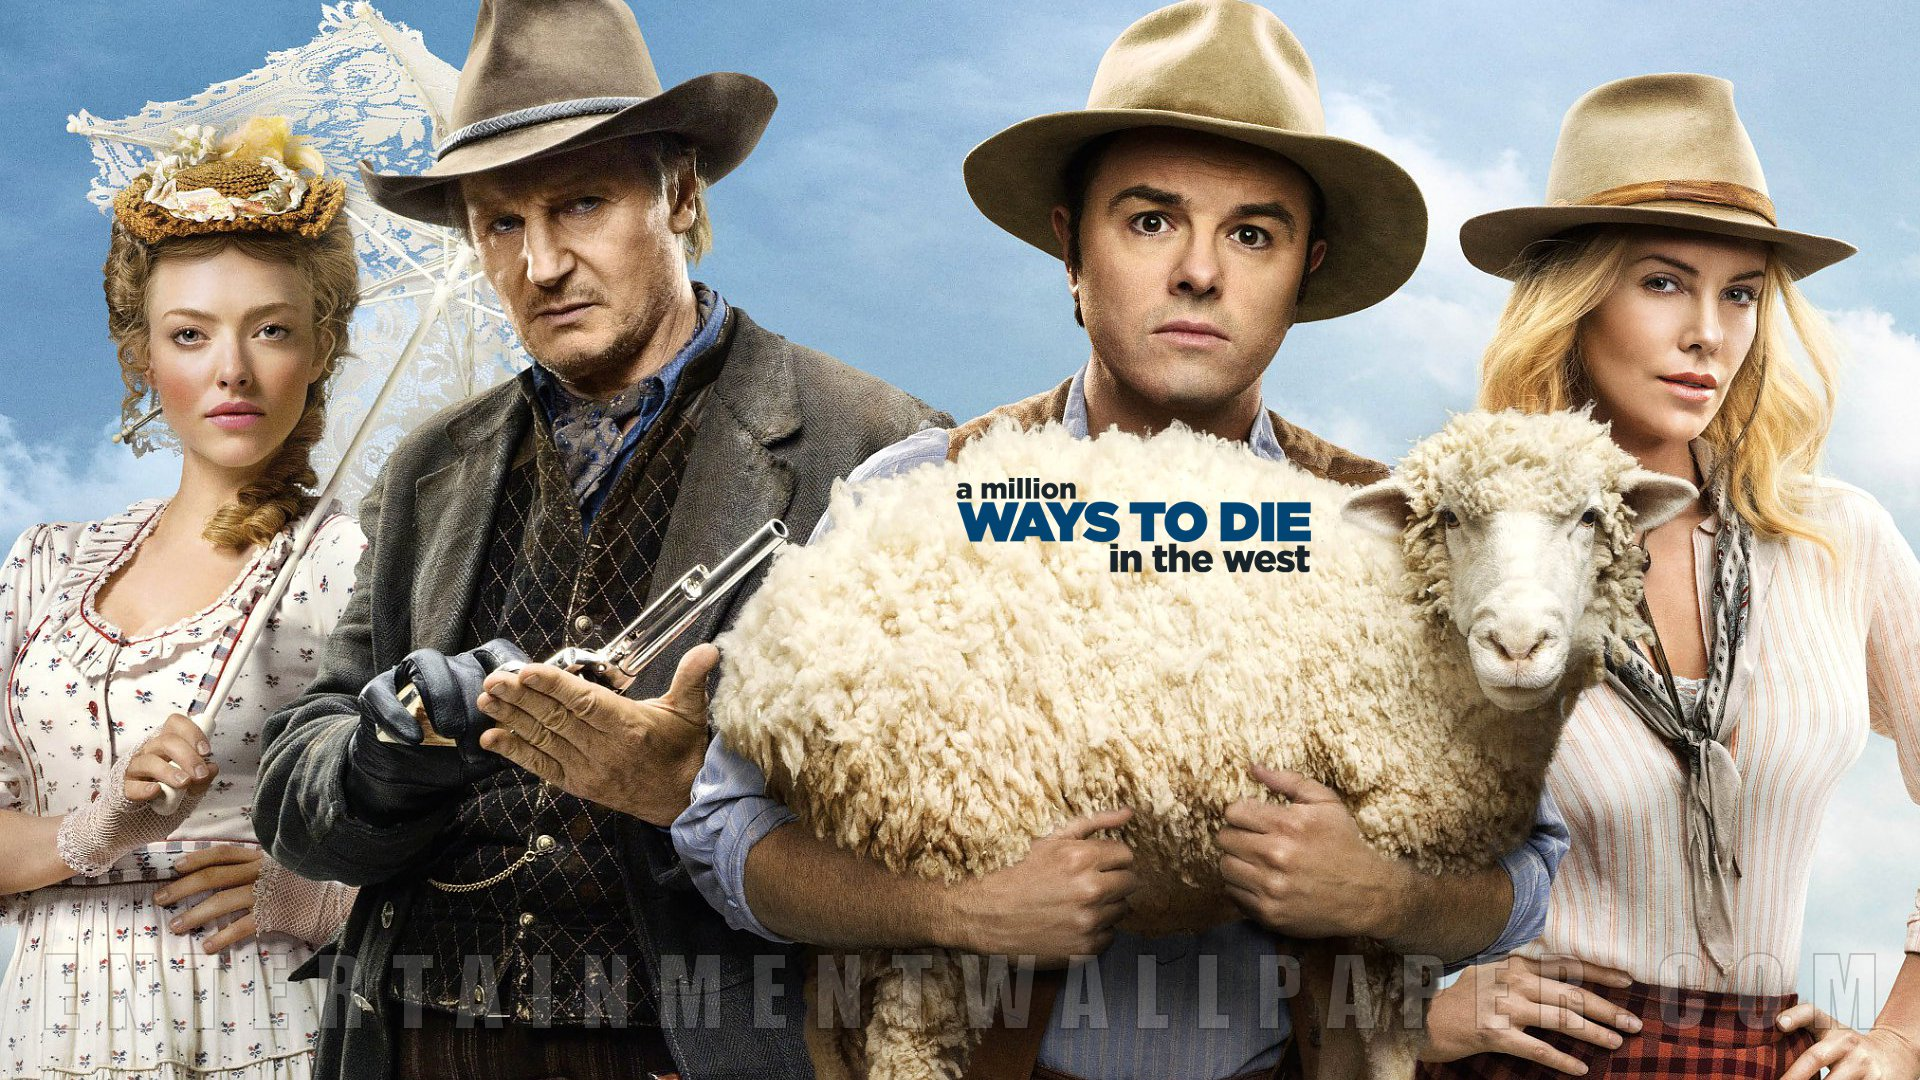 A Million Ways to Die in the West Wallpaper - Original size, download now.